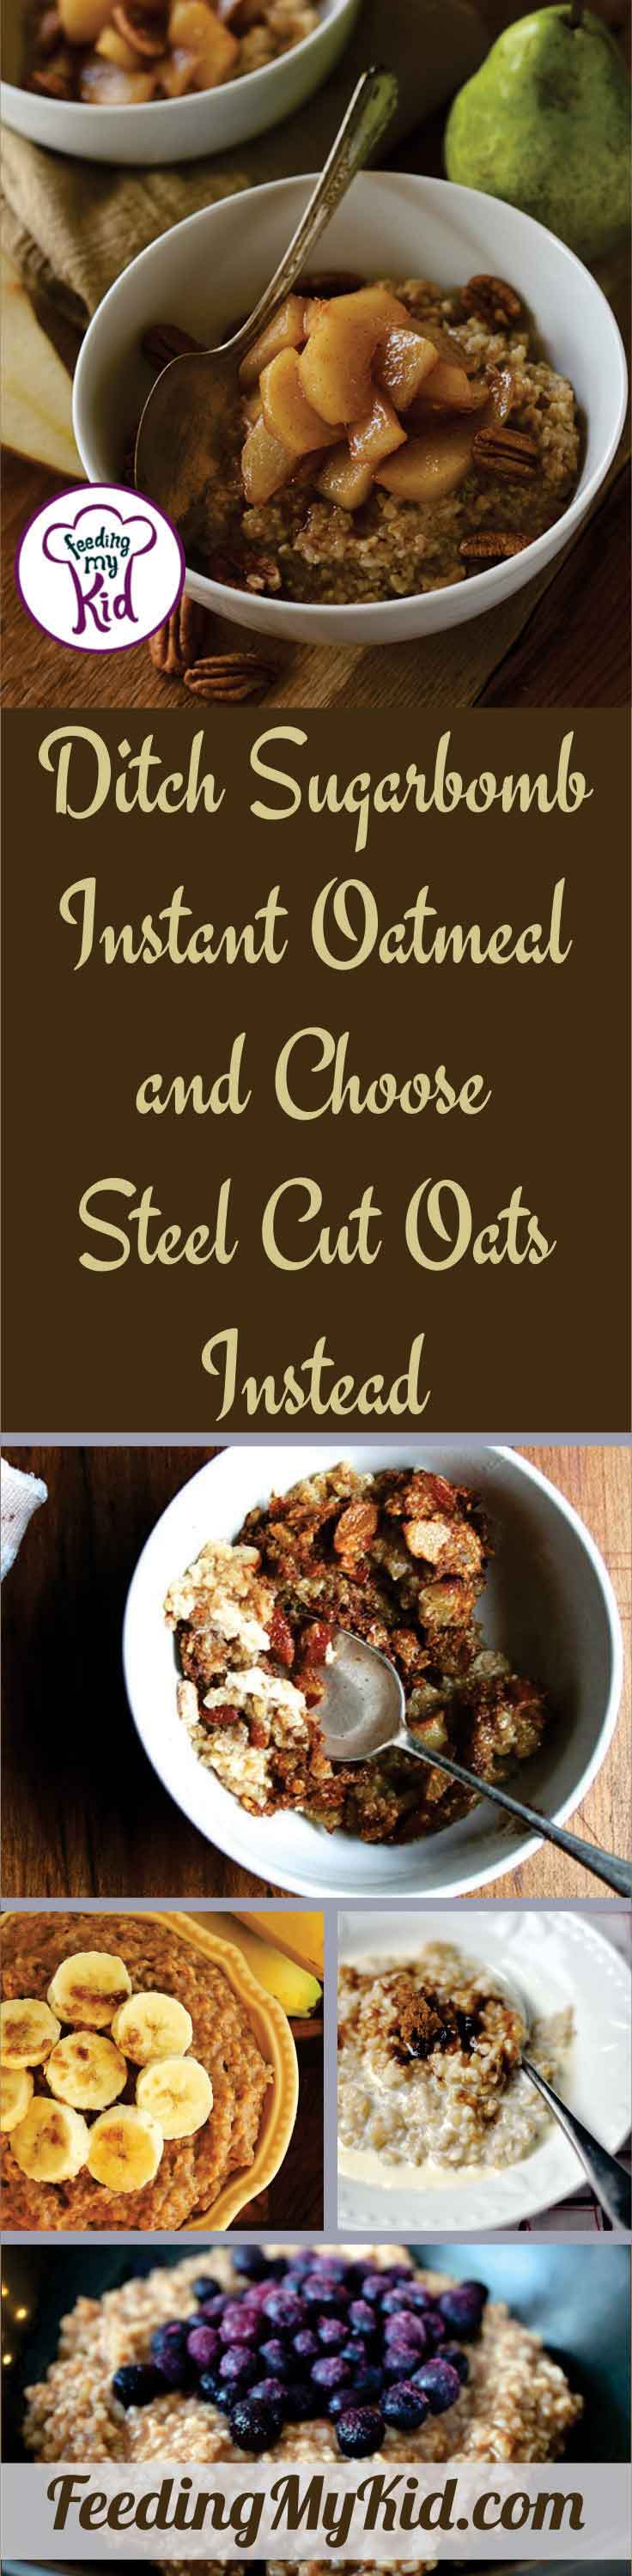 Ditch the instant oatmeals and try steel cut oats instead! They're way better for you and can cook in the same amount of time in the microwave.